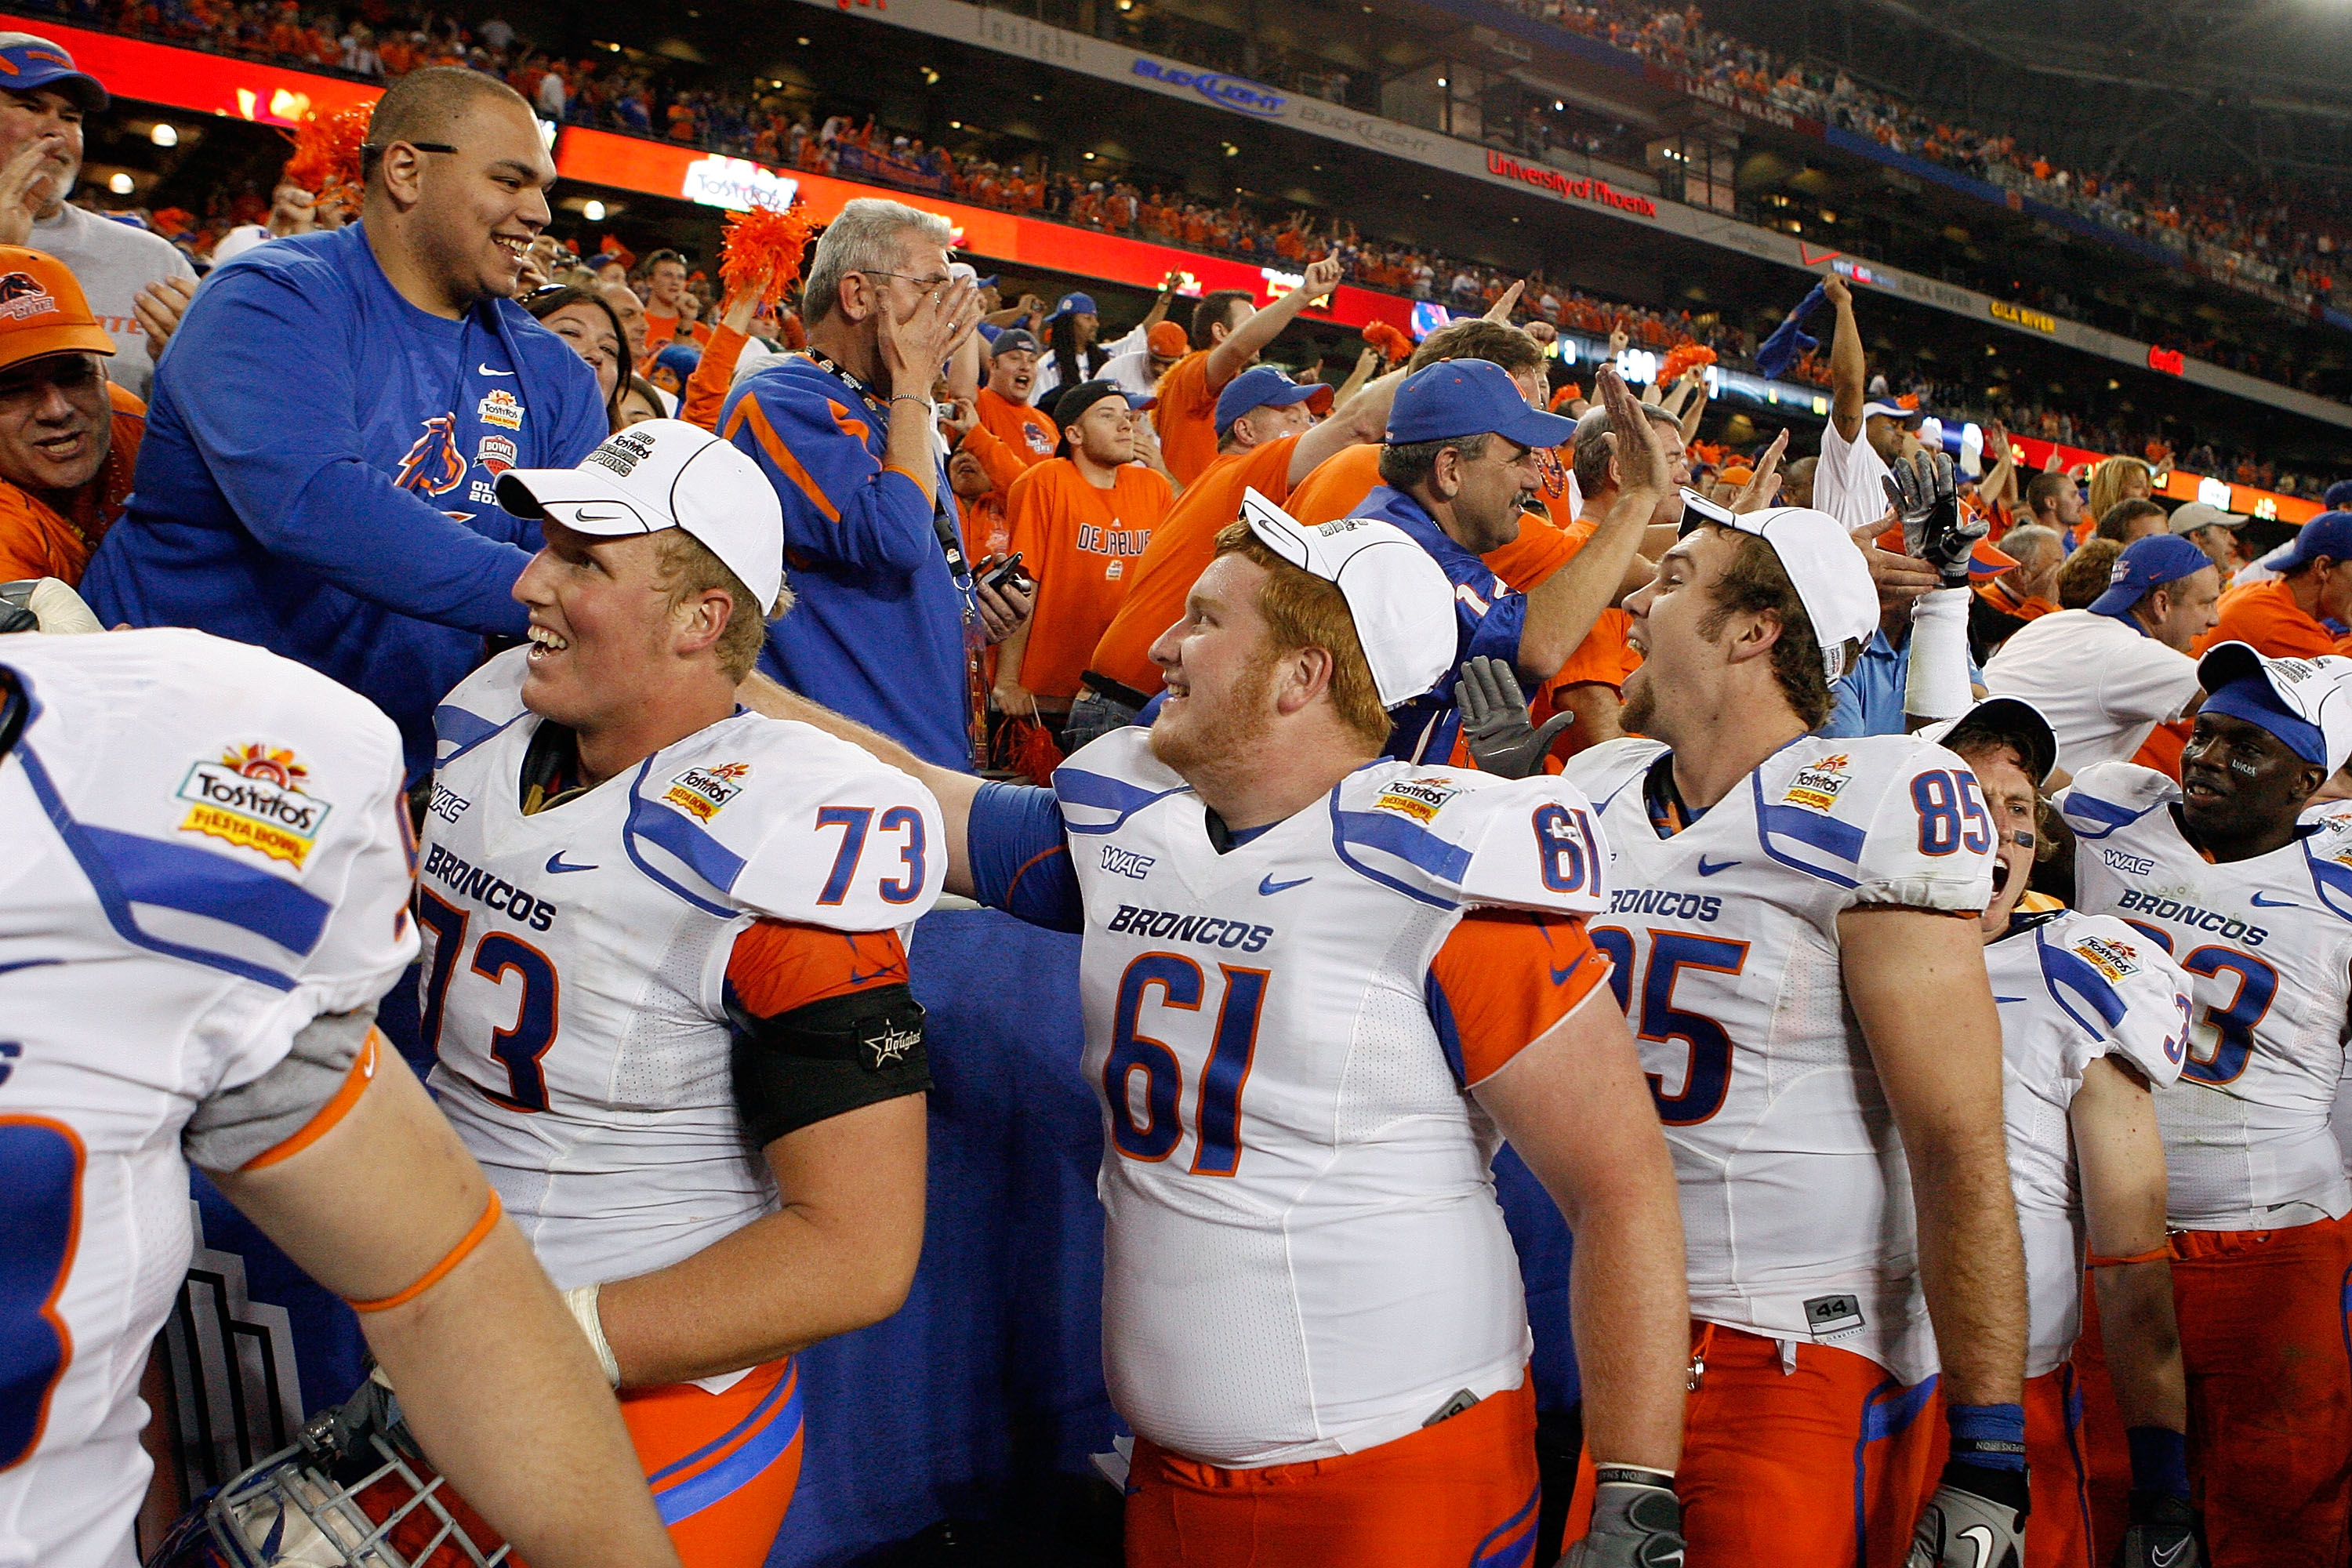 GLENDALE, AZ - JANUARY 04:  Nate Potter #73, Joe Kellogg #61 and Tommy Gallarda #85 of the Boise State Broncos and other teammates shake hands with their fans after their 17-10 victory against the TCU Horned Frogs during the Tostitos Fiesta Bowl at the Un